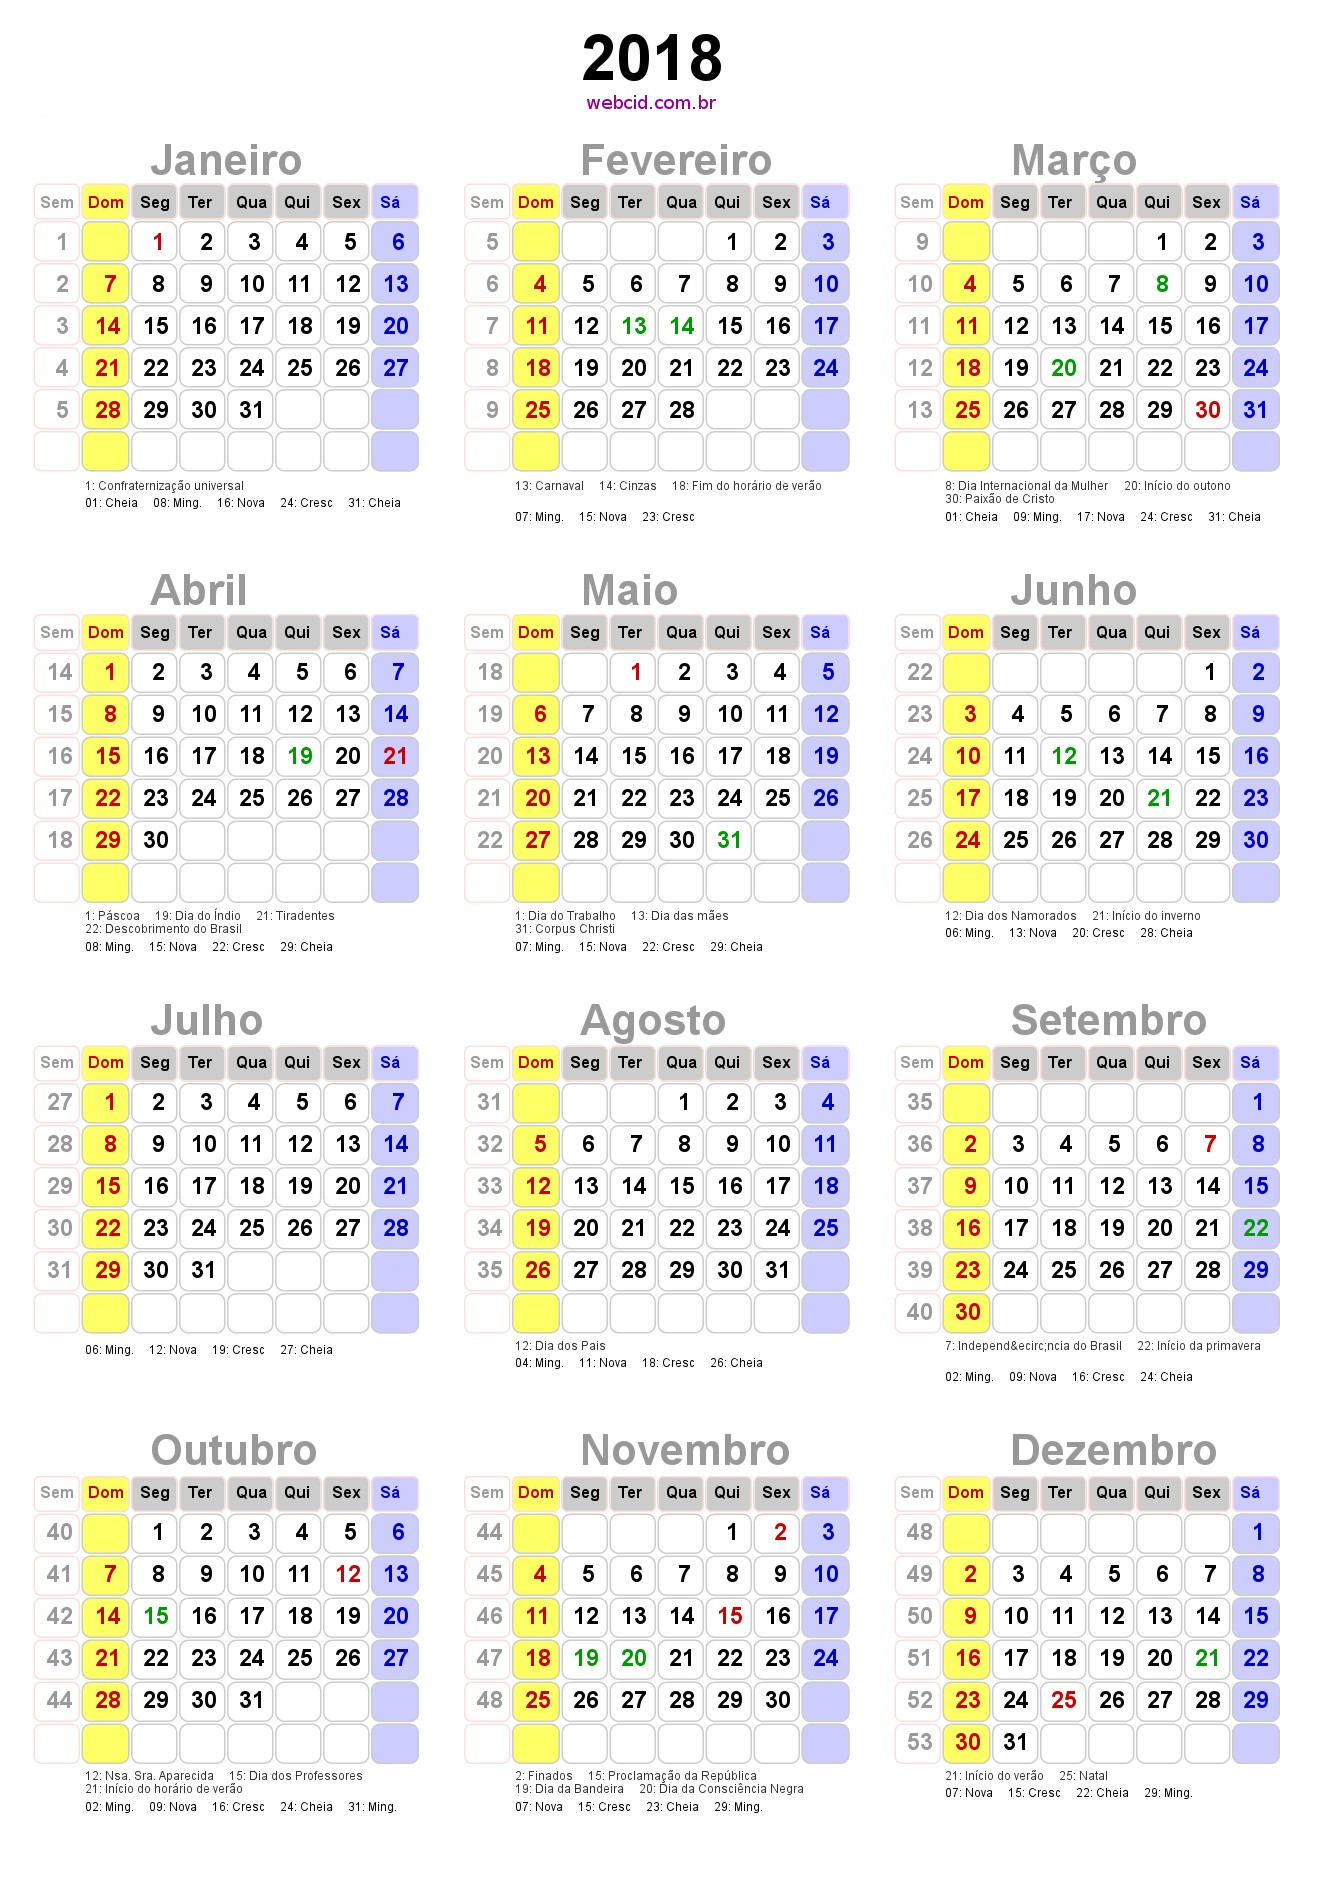 Calendário 2019 Com Feriados Nacionais Recientes Pin by Elizabeth Germano Miraldo On Calendario 2018 Of Calendário 2019 Com Feriados Nacionais Más Recientemente Liberado Feeds Rss Search Nasa Pdf Free Download